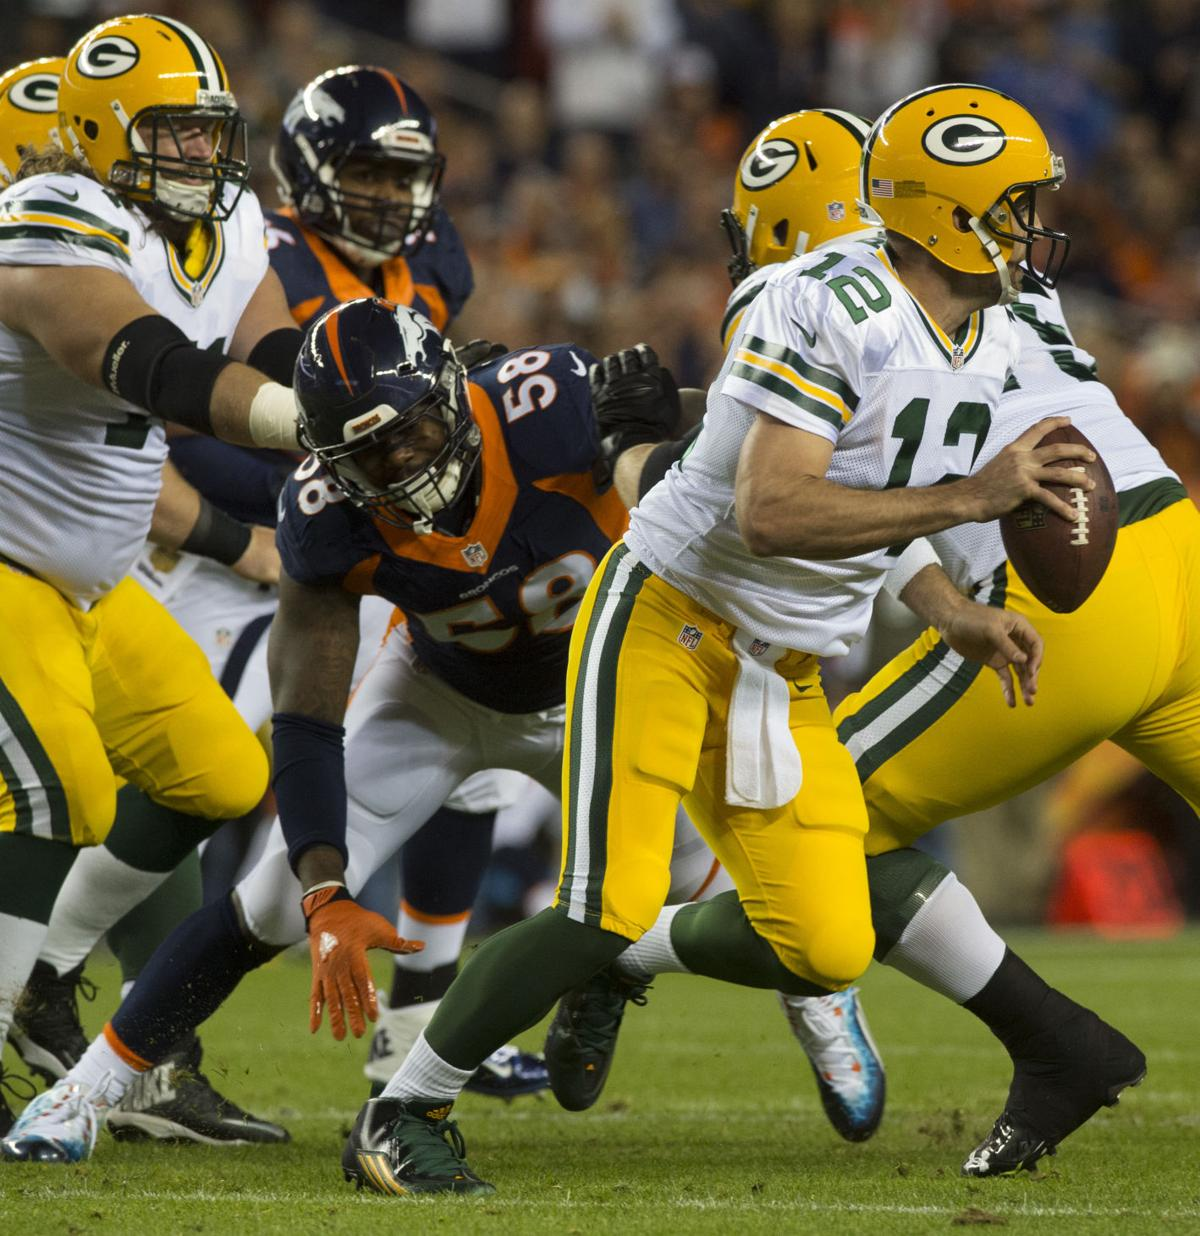 Denver outside linebacker Von Miller chases Green Bay quarterback Aaron Rodgers during the first quarter Sunday, Nov. 1, 2015, at Sports Authority Field at Mile High in Denver. (The Gazette, Christian Murdock)